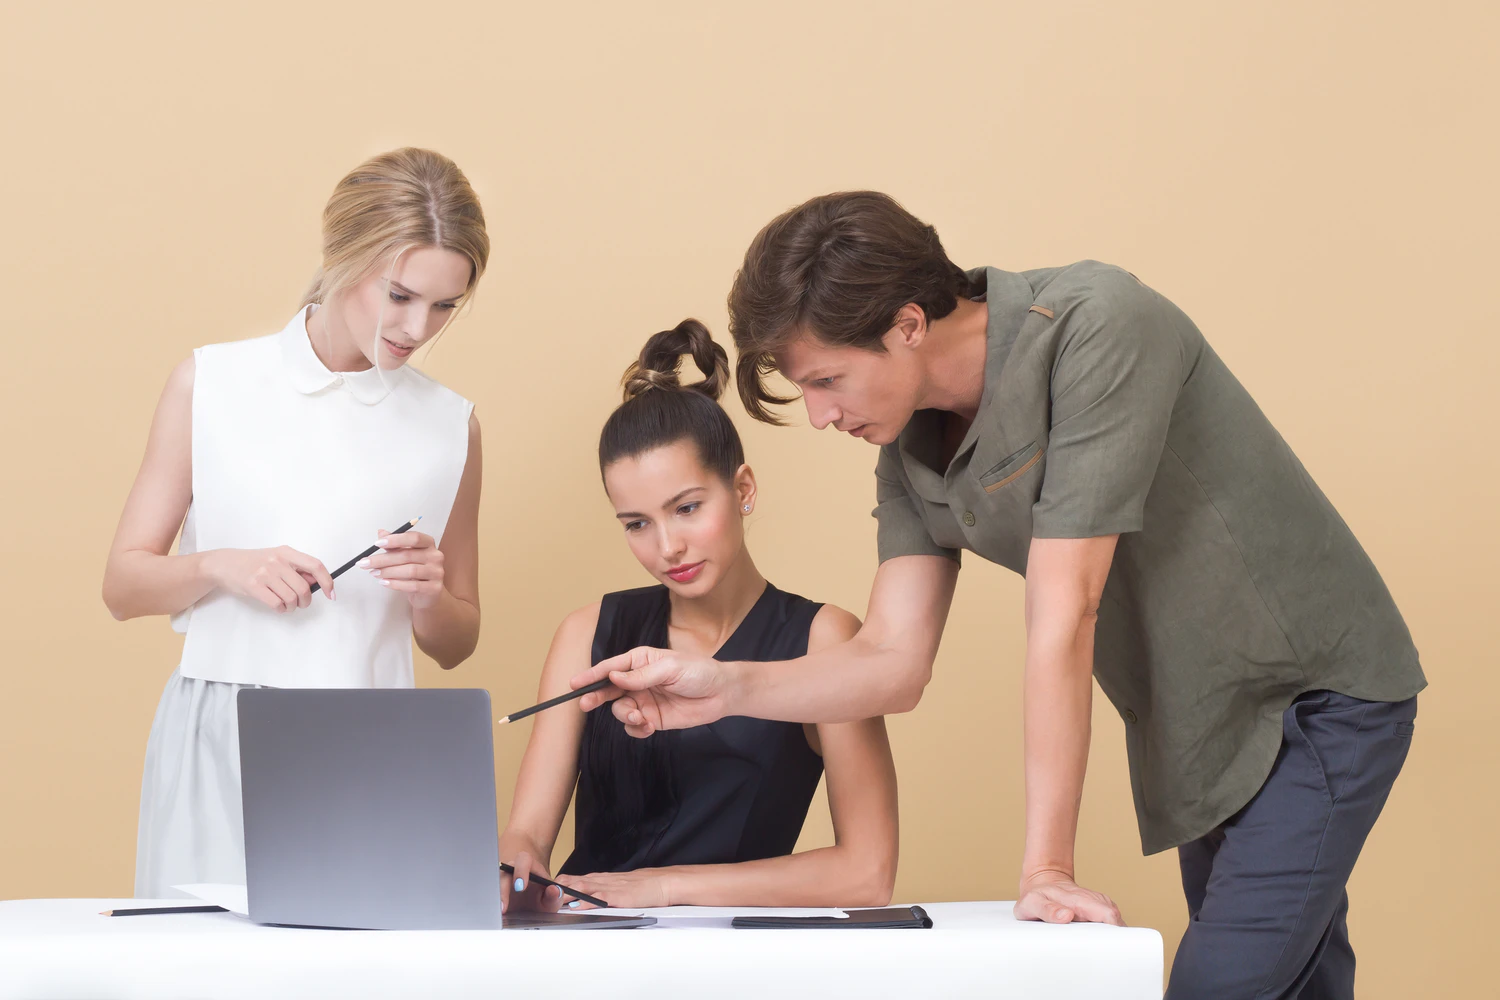 Three people in front of a beige background, looking over the same laptop